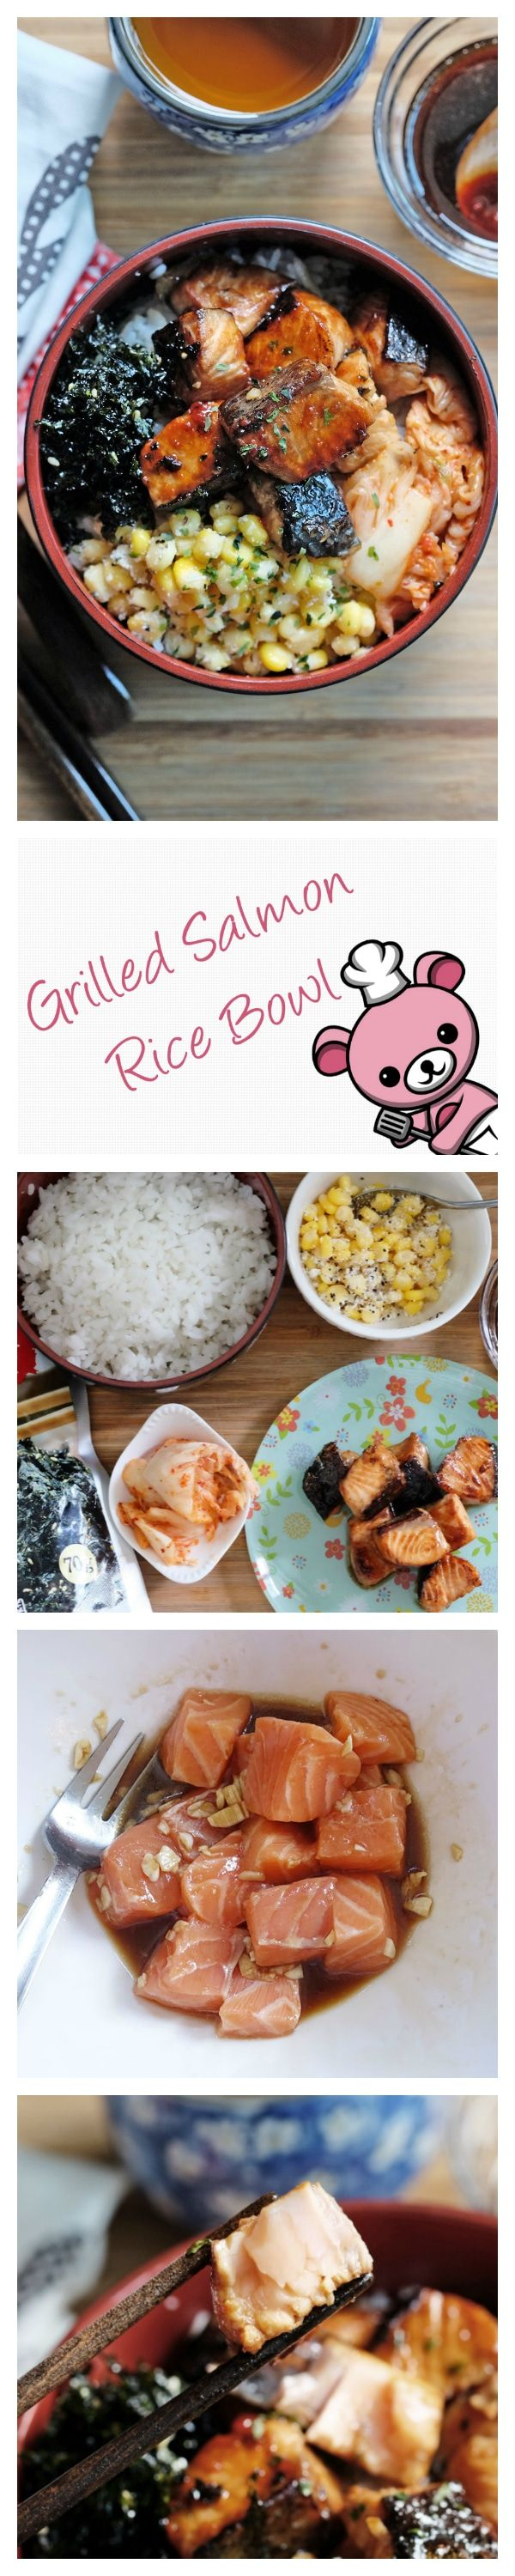 Combining The Very Best In Both Japanese And Korean Flavors, This Exquisite  Grilled Salmon Rice